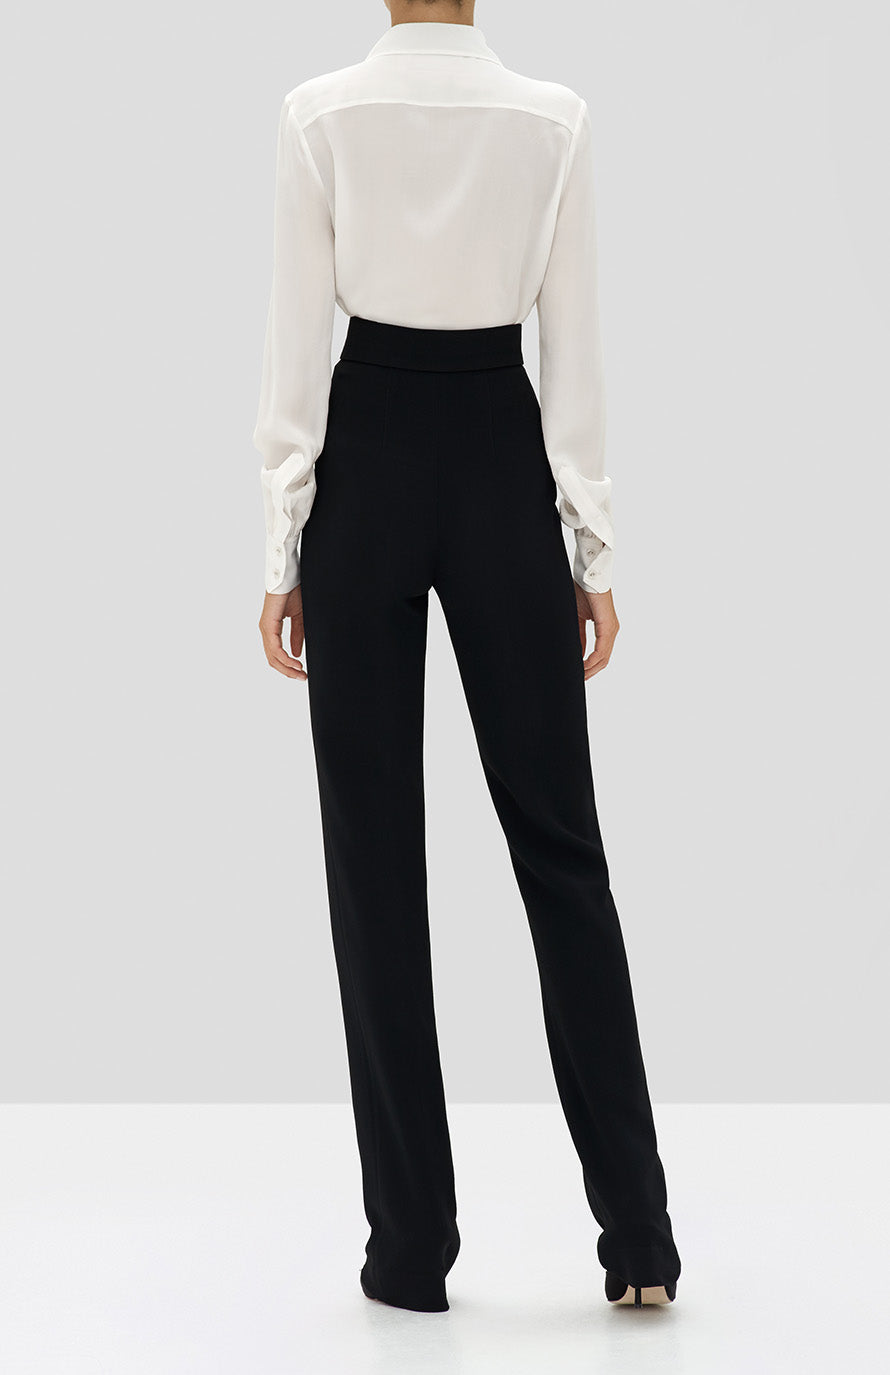 Alexis Crawford Top in Off White and Lofton Pant in Black from the Holiday 2019 Ready To Wear Collection - Rear View